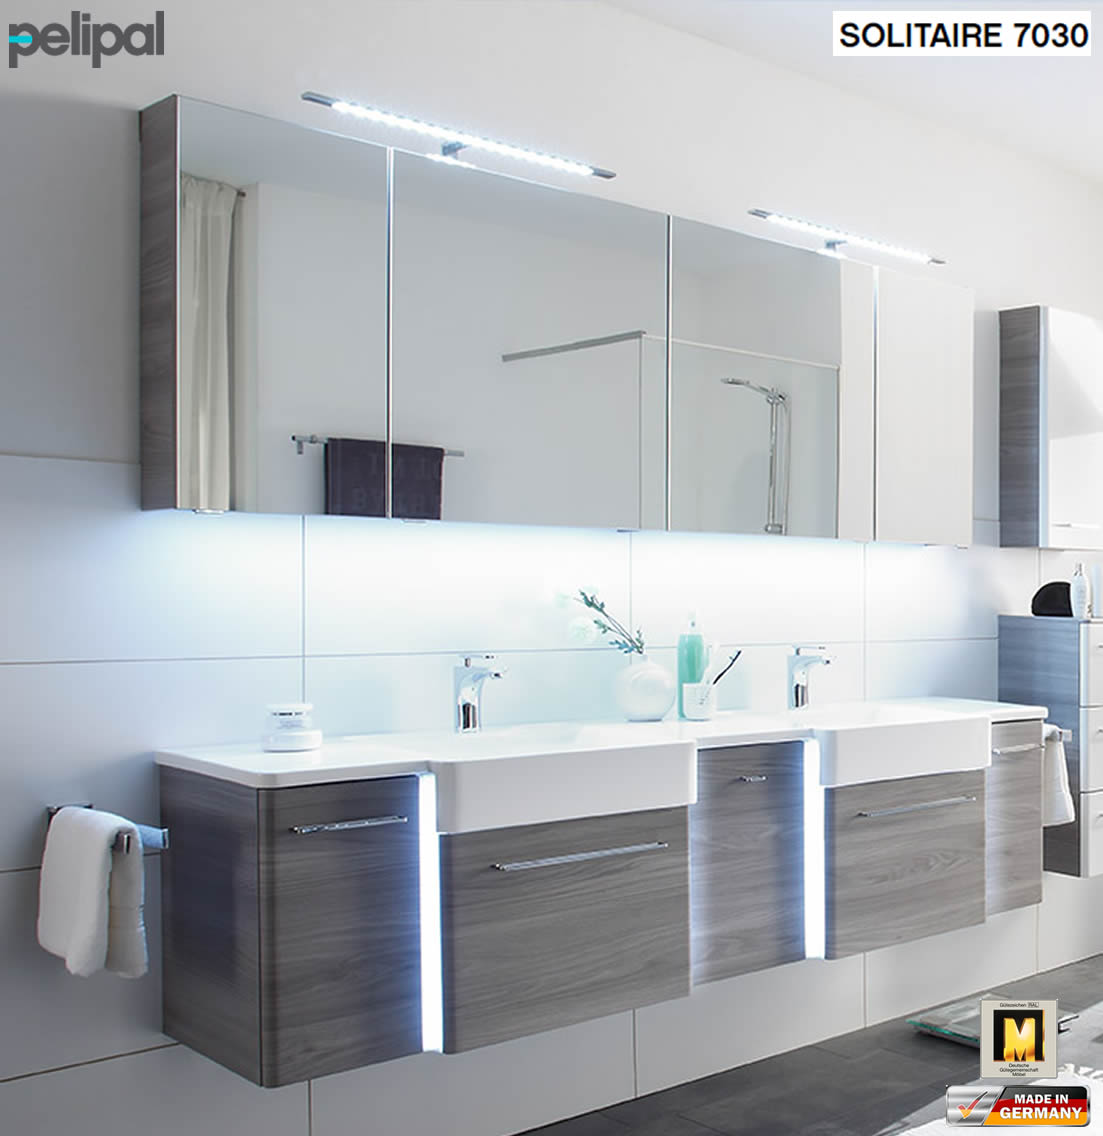 pelipal solitaire 7030 badm bel set mit 188 cm. Black Bedroom Furniture Sets. Home Design Ideas